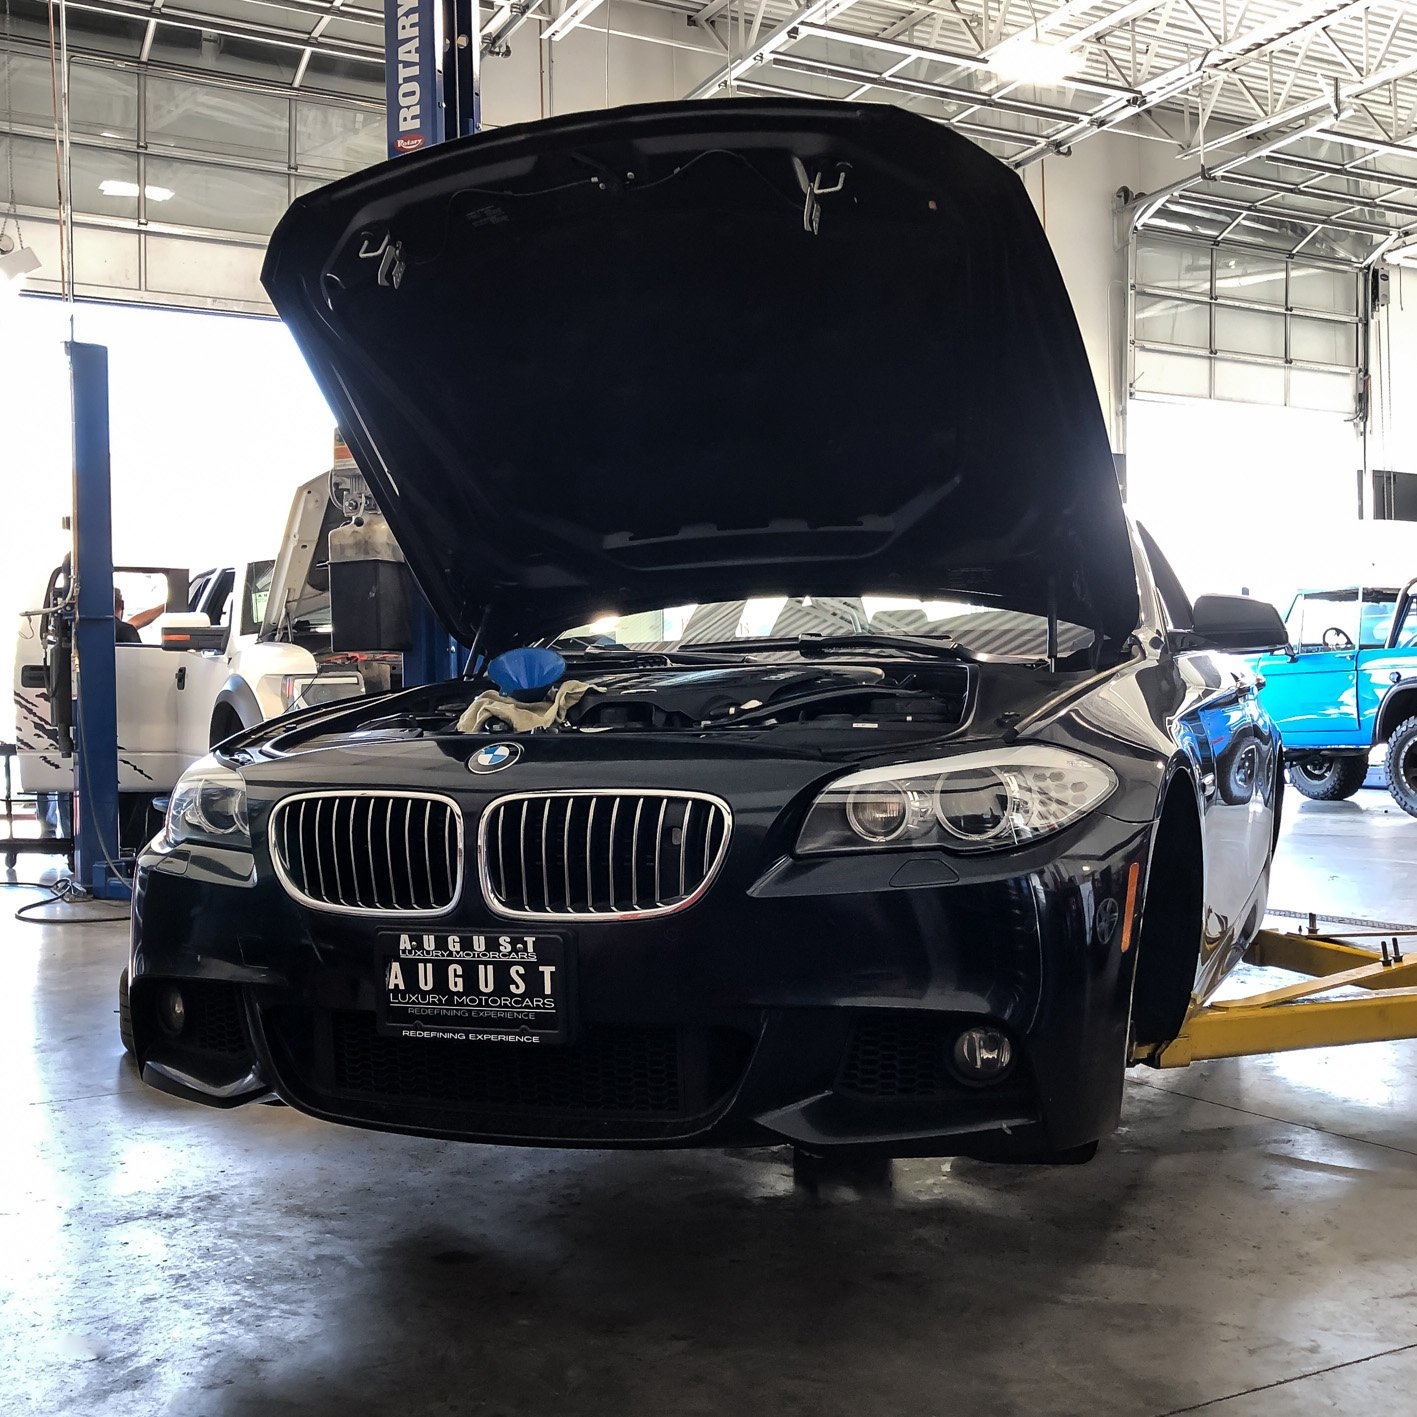 BMW Repair and Maintenance at August Garage in Kelowna BC